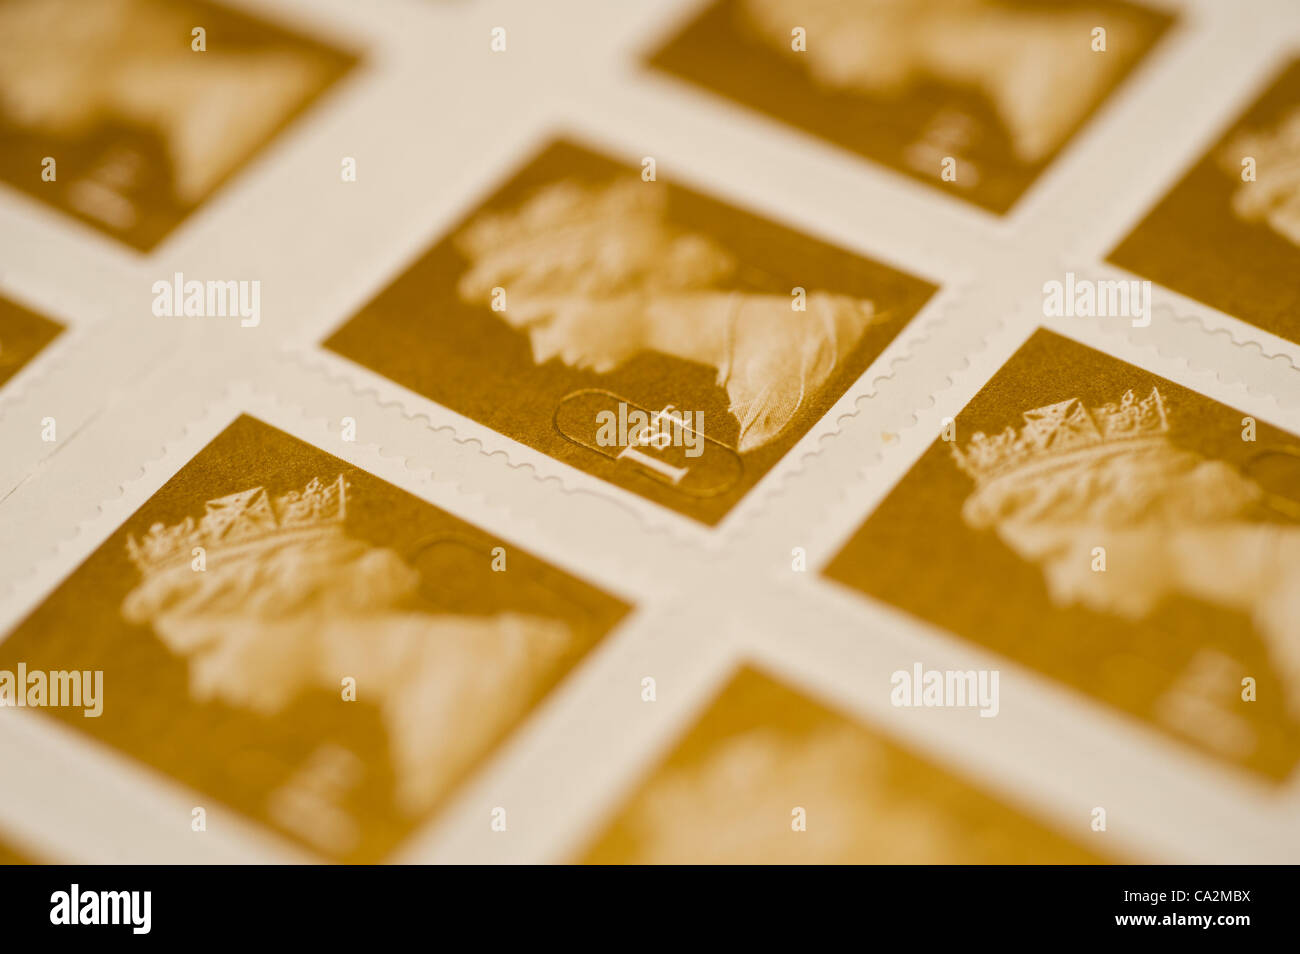 A sheet of first-class postage stamps. They will rise 30%  in price from 46p to 60p from 30 April 2012 after the Stock Photo